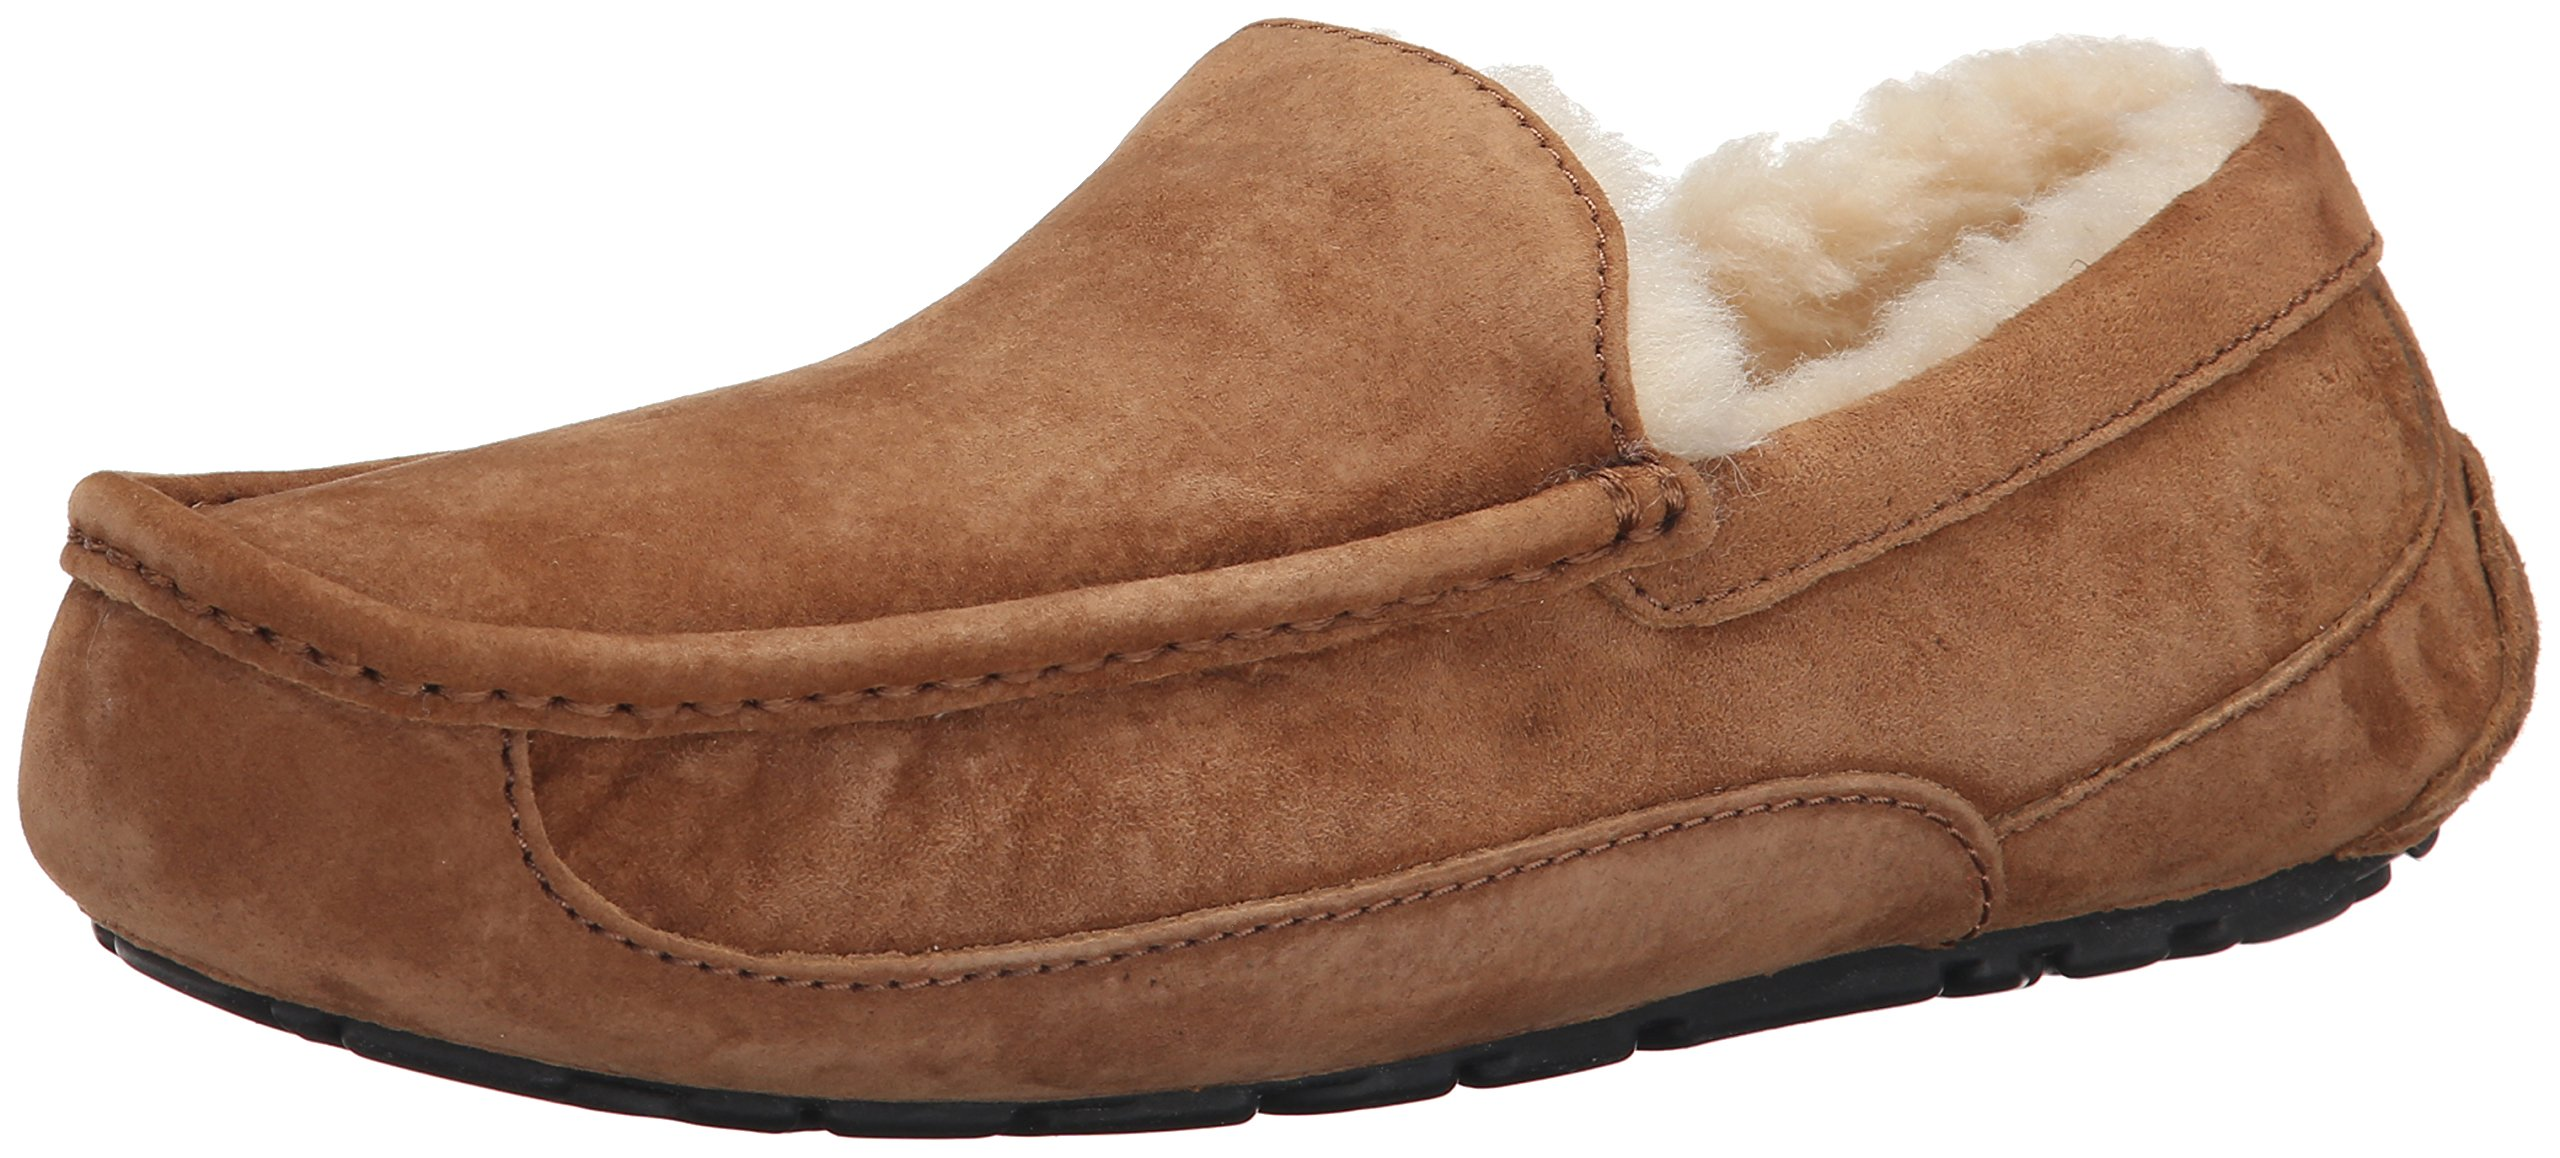 UGG Men's Ascot Slipper, Chestnut, 13 M US